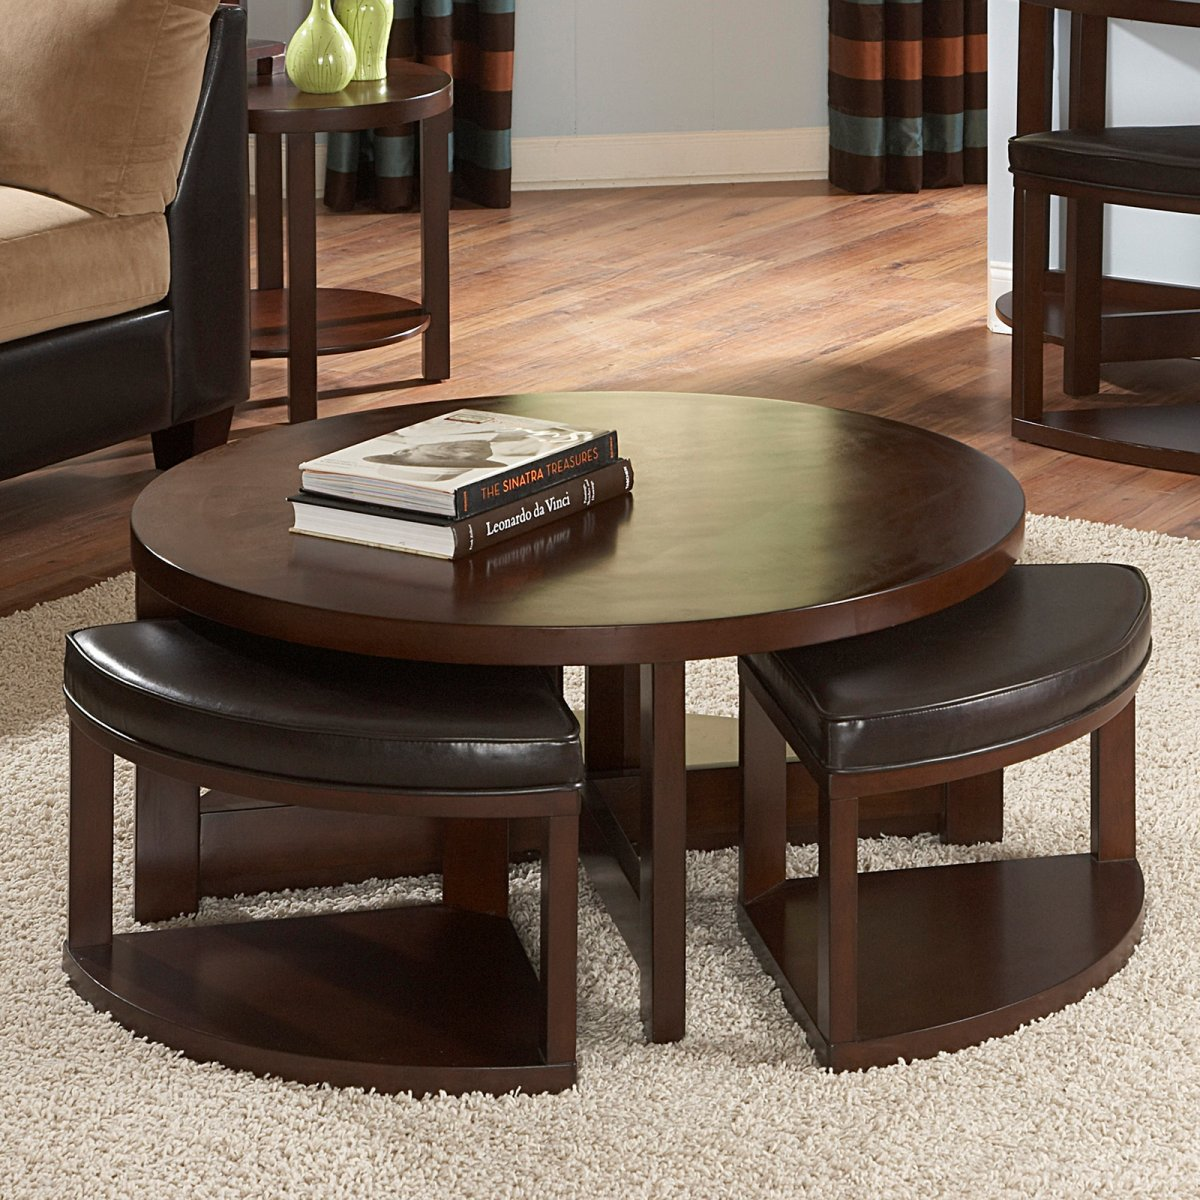 Ottoman Round Tufted Large Coffee Table